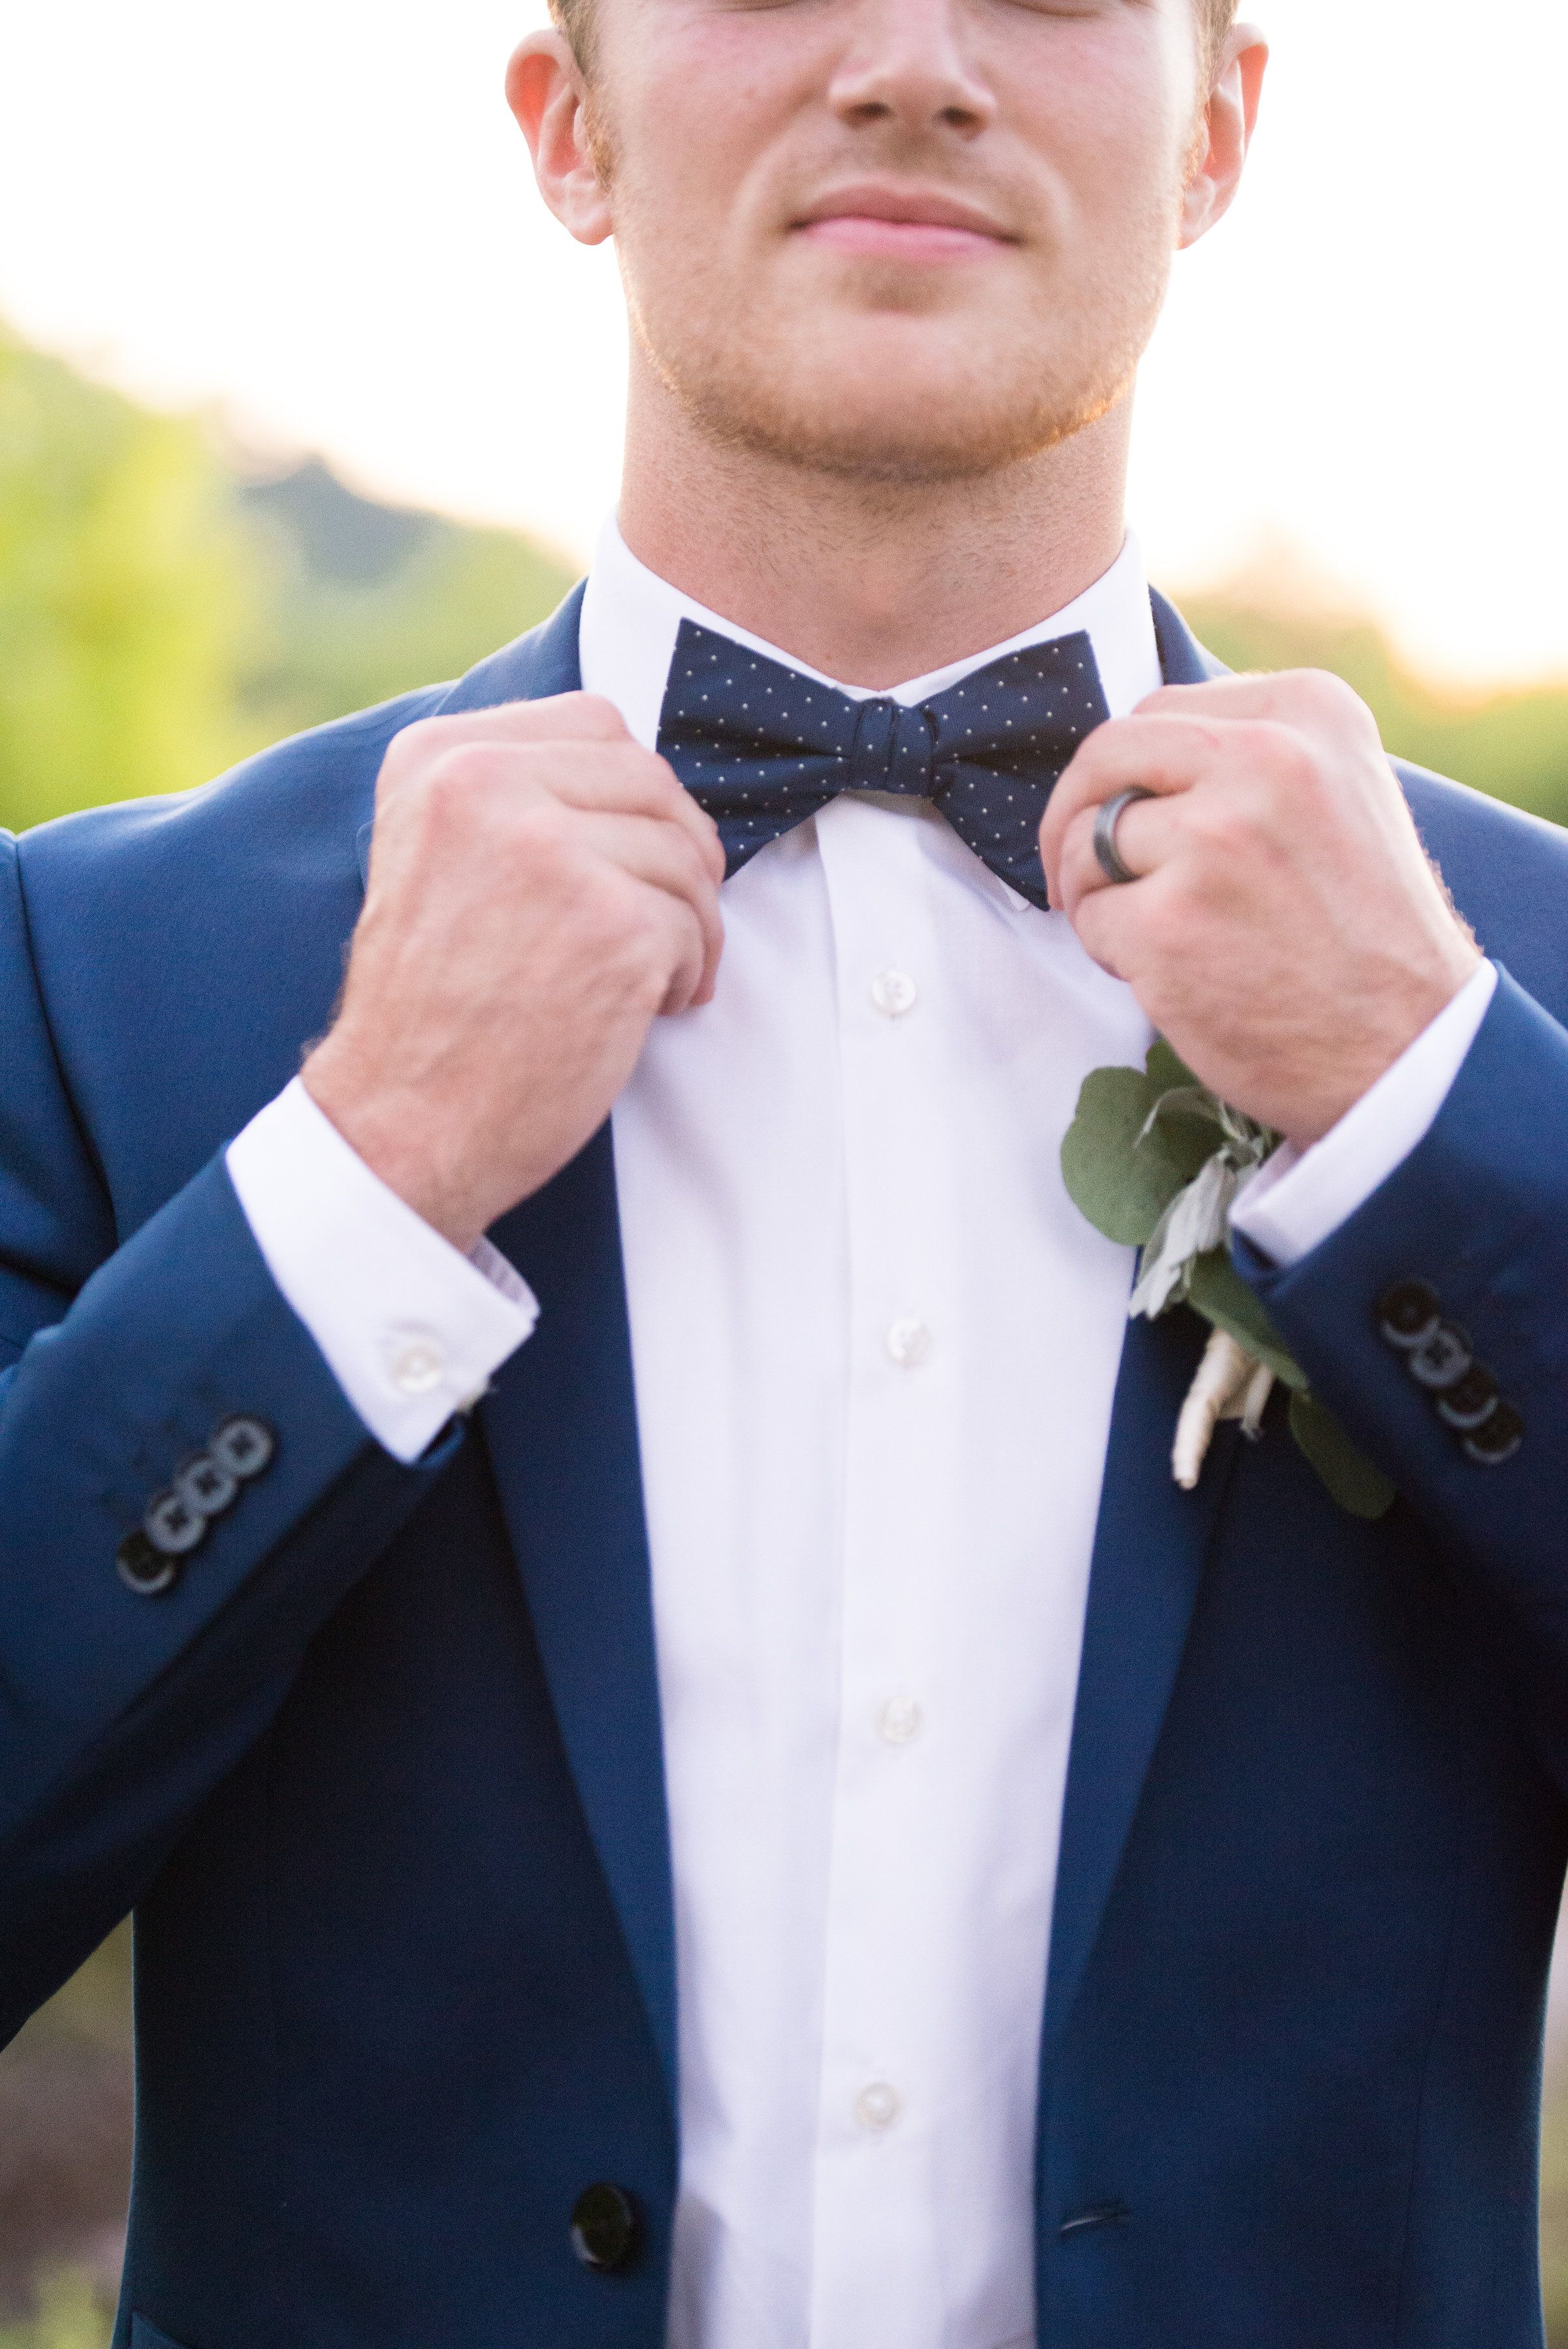 Navy blue grooms attire. Bow tie and navy blue suits are